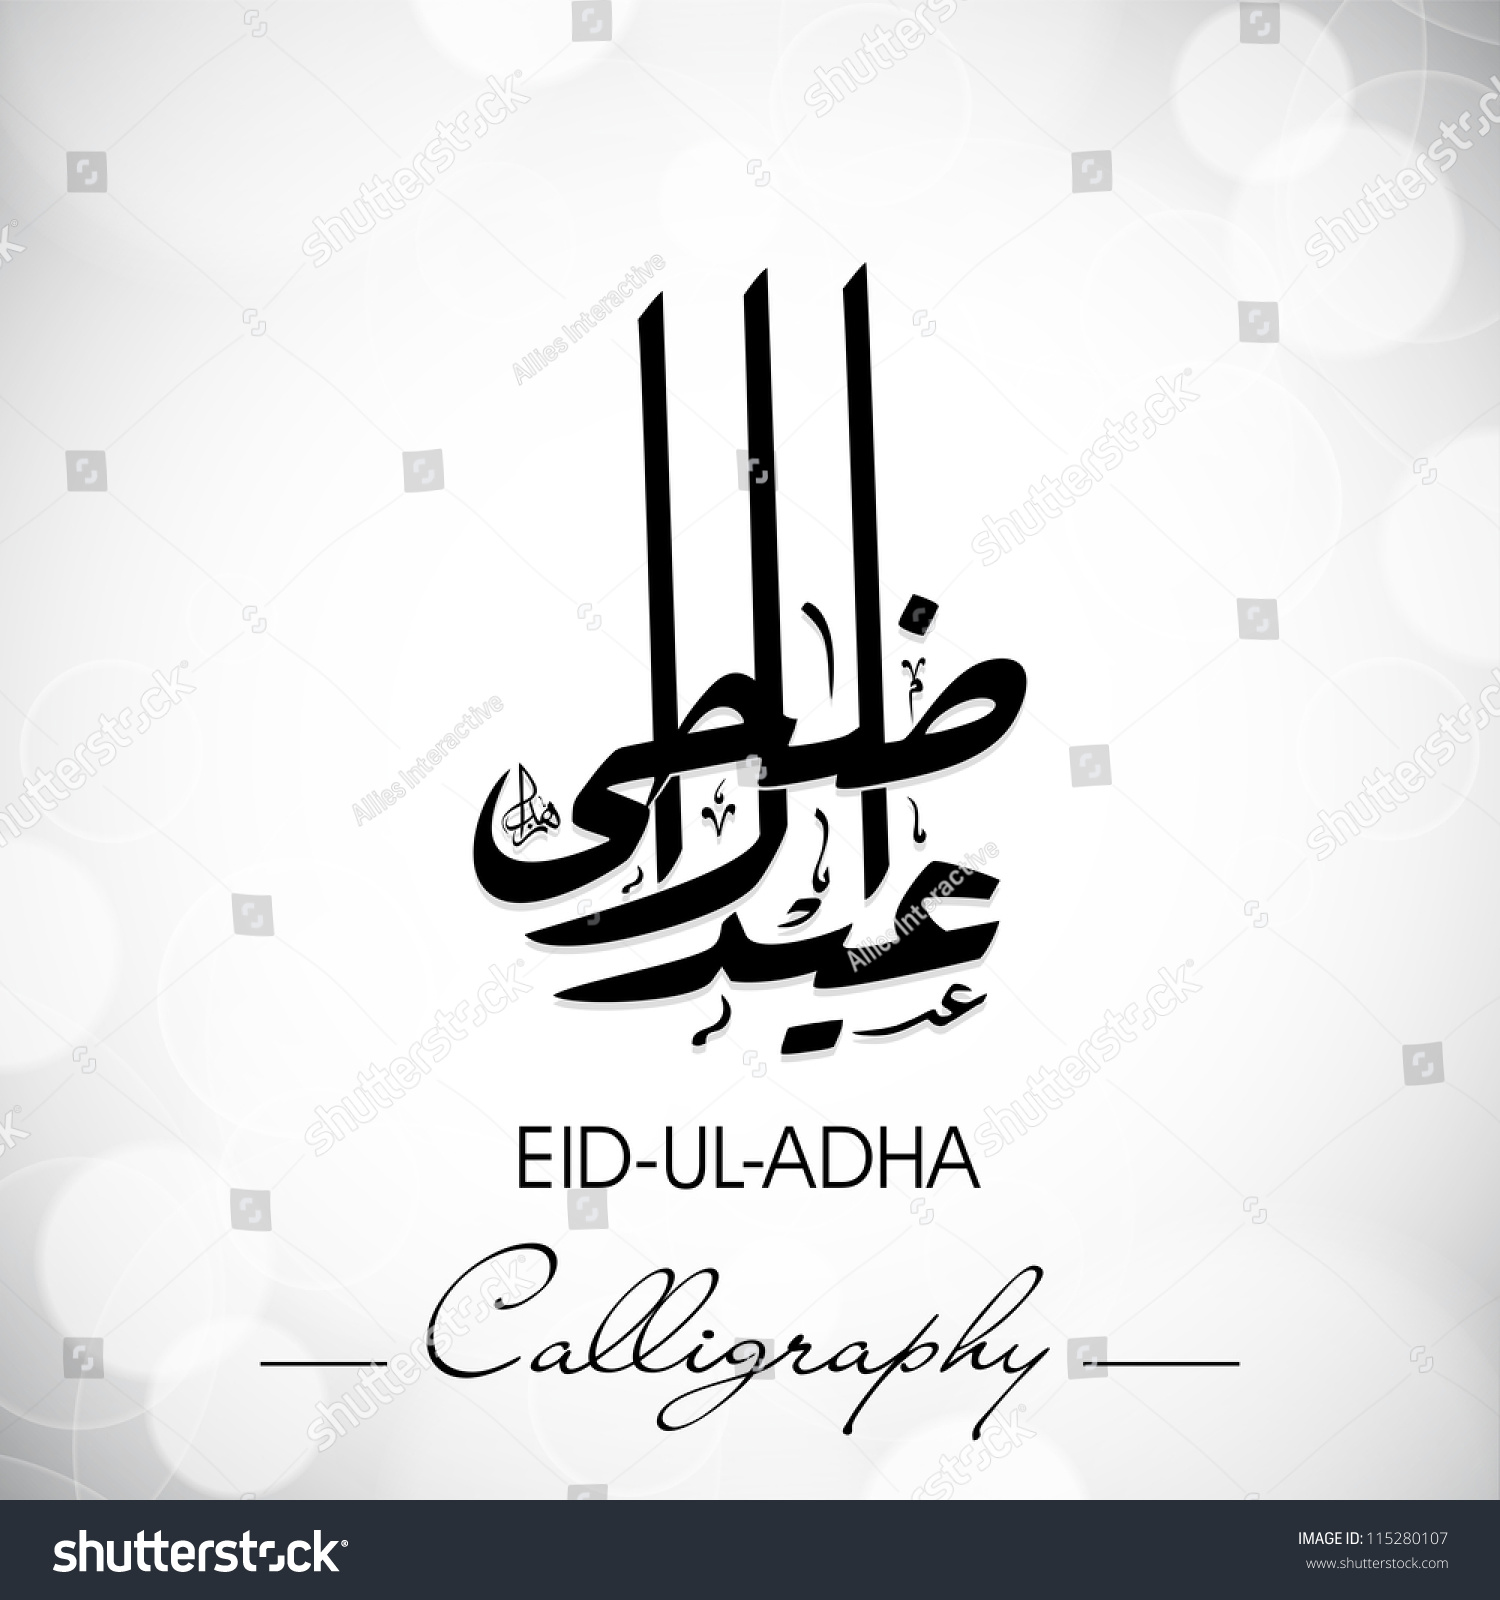 Eid ul adha or azha arabic islamic calligraphy for